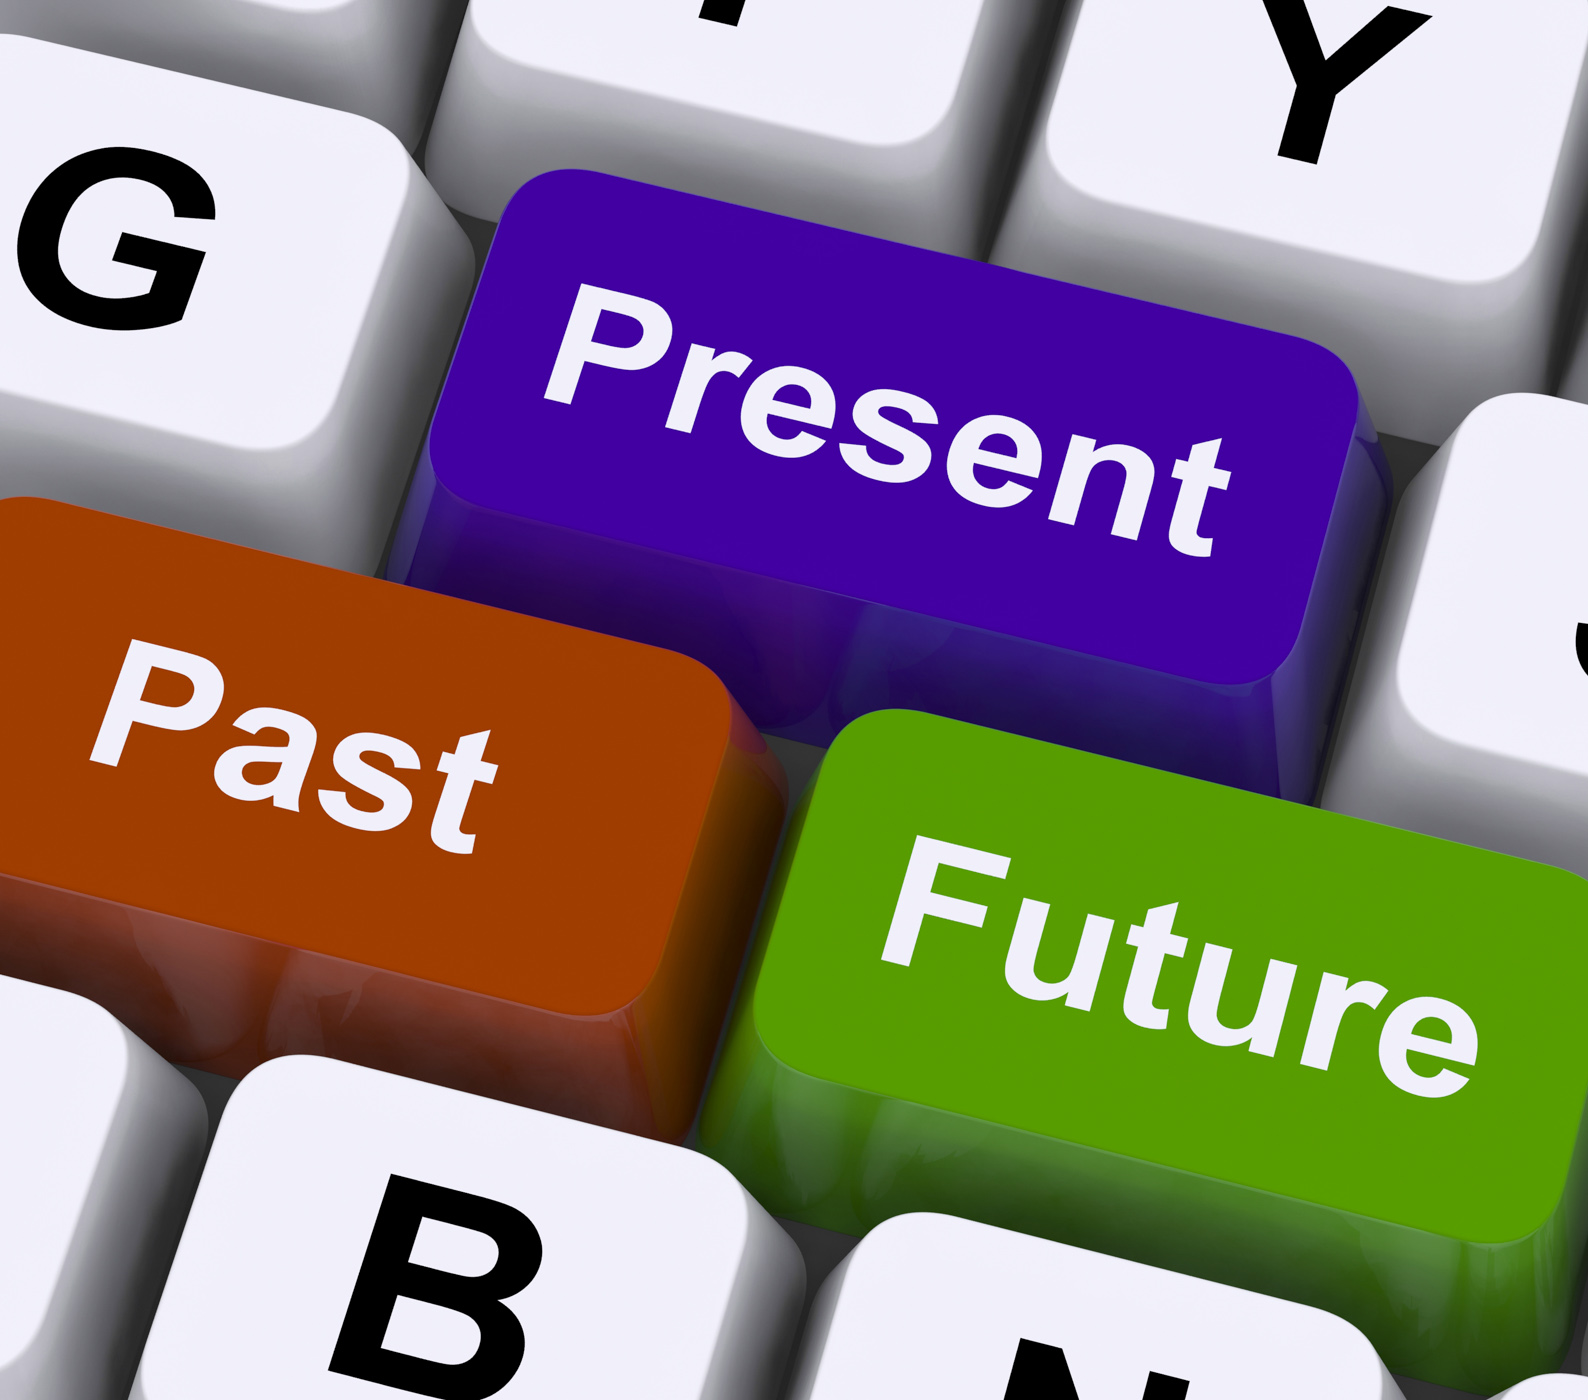 Past present and future keys show evolution or aging photo